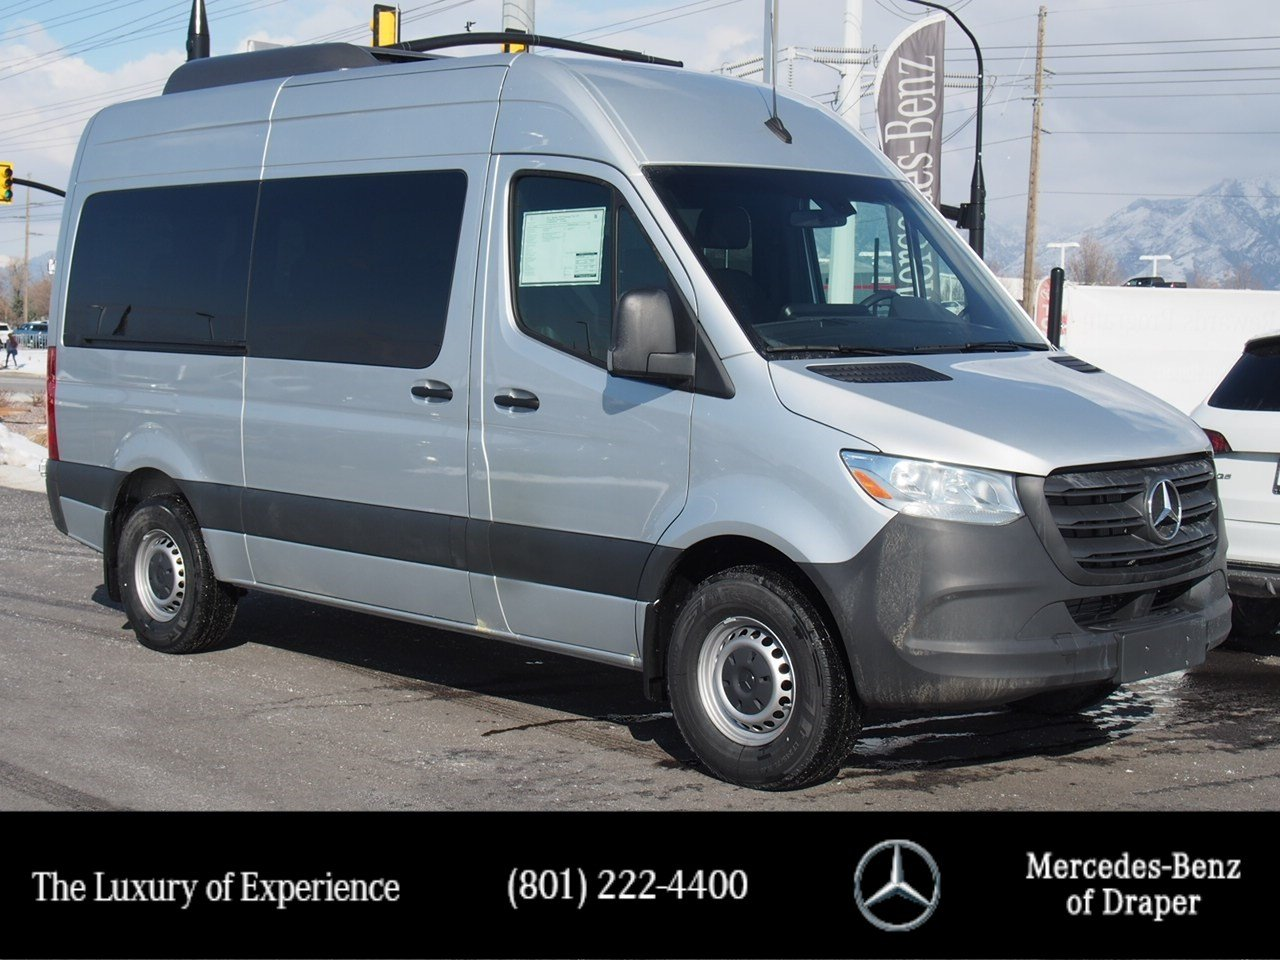 New 2019 Mercedes-Benz Sprinter Passenger Vans